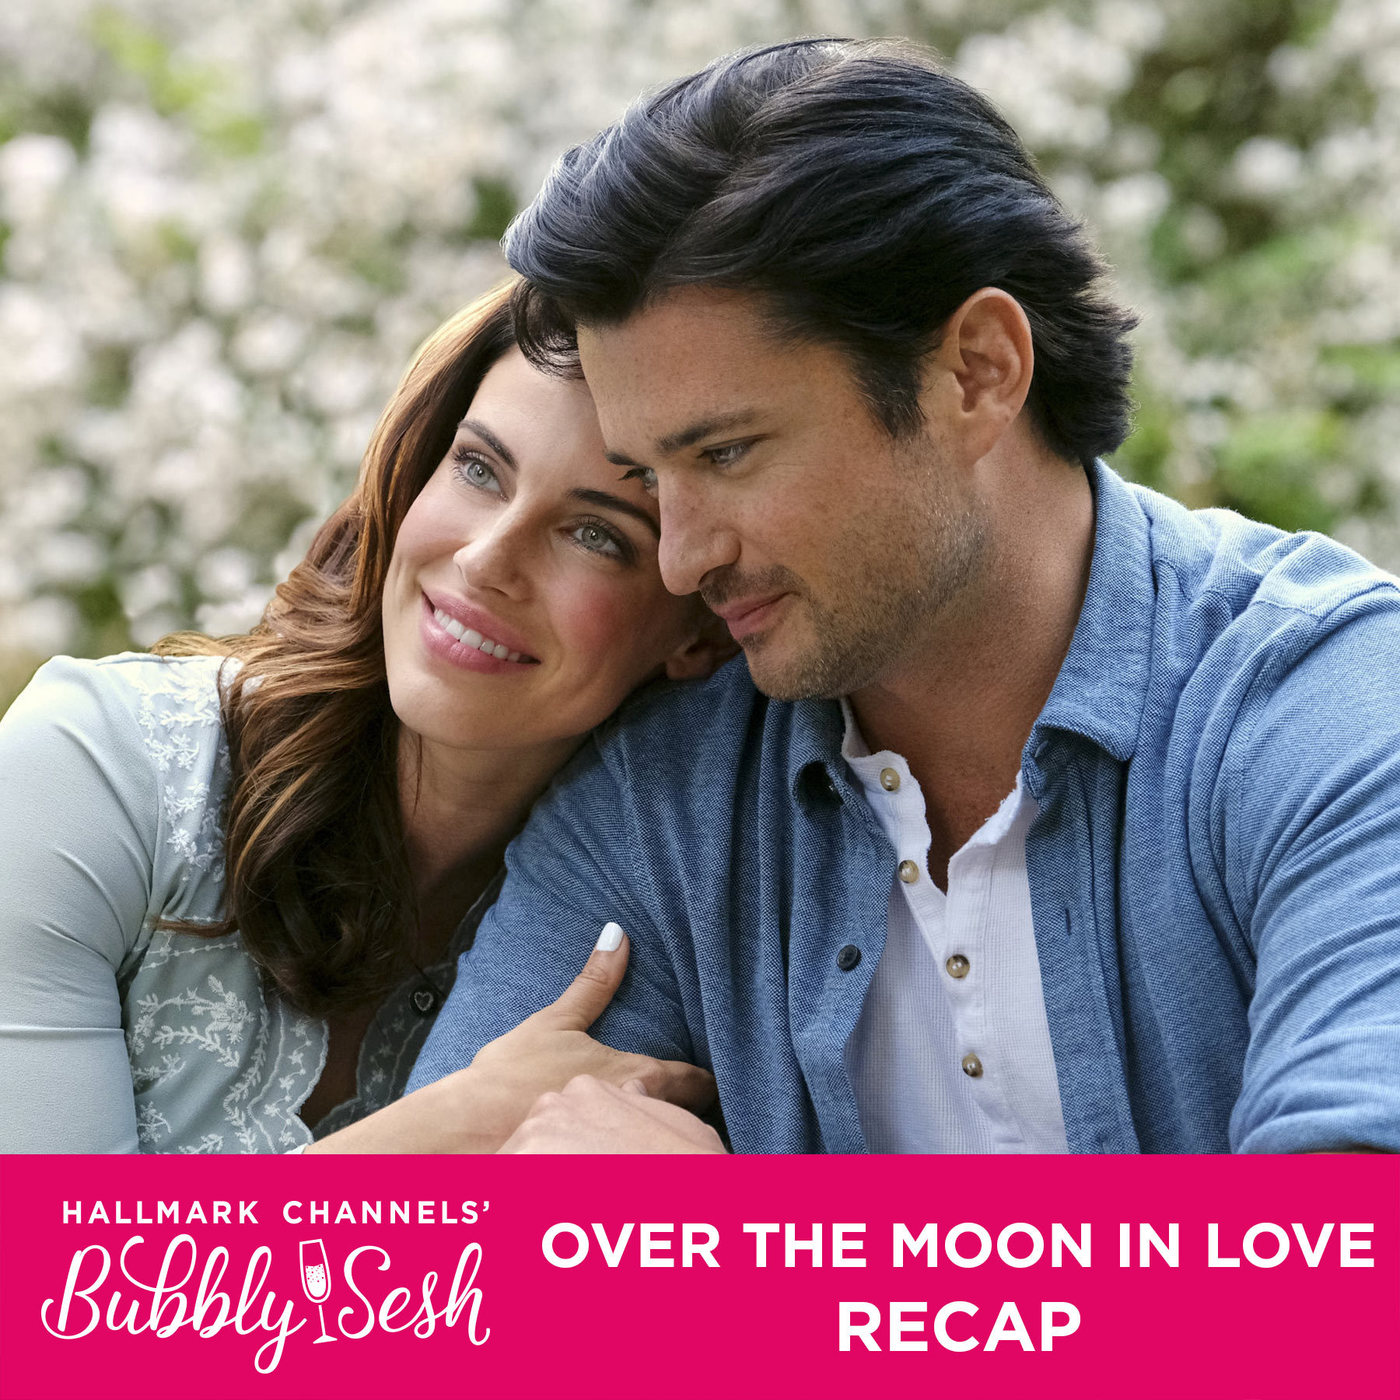 Over the Moon in Love Recap